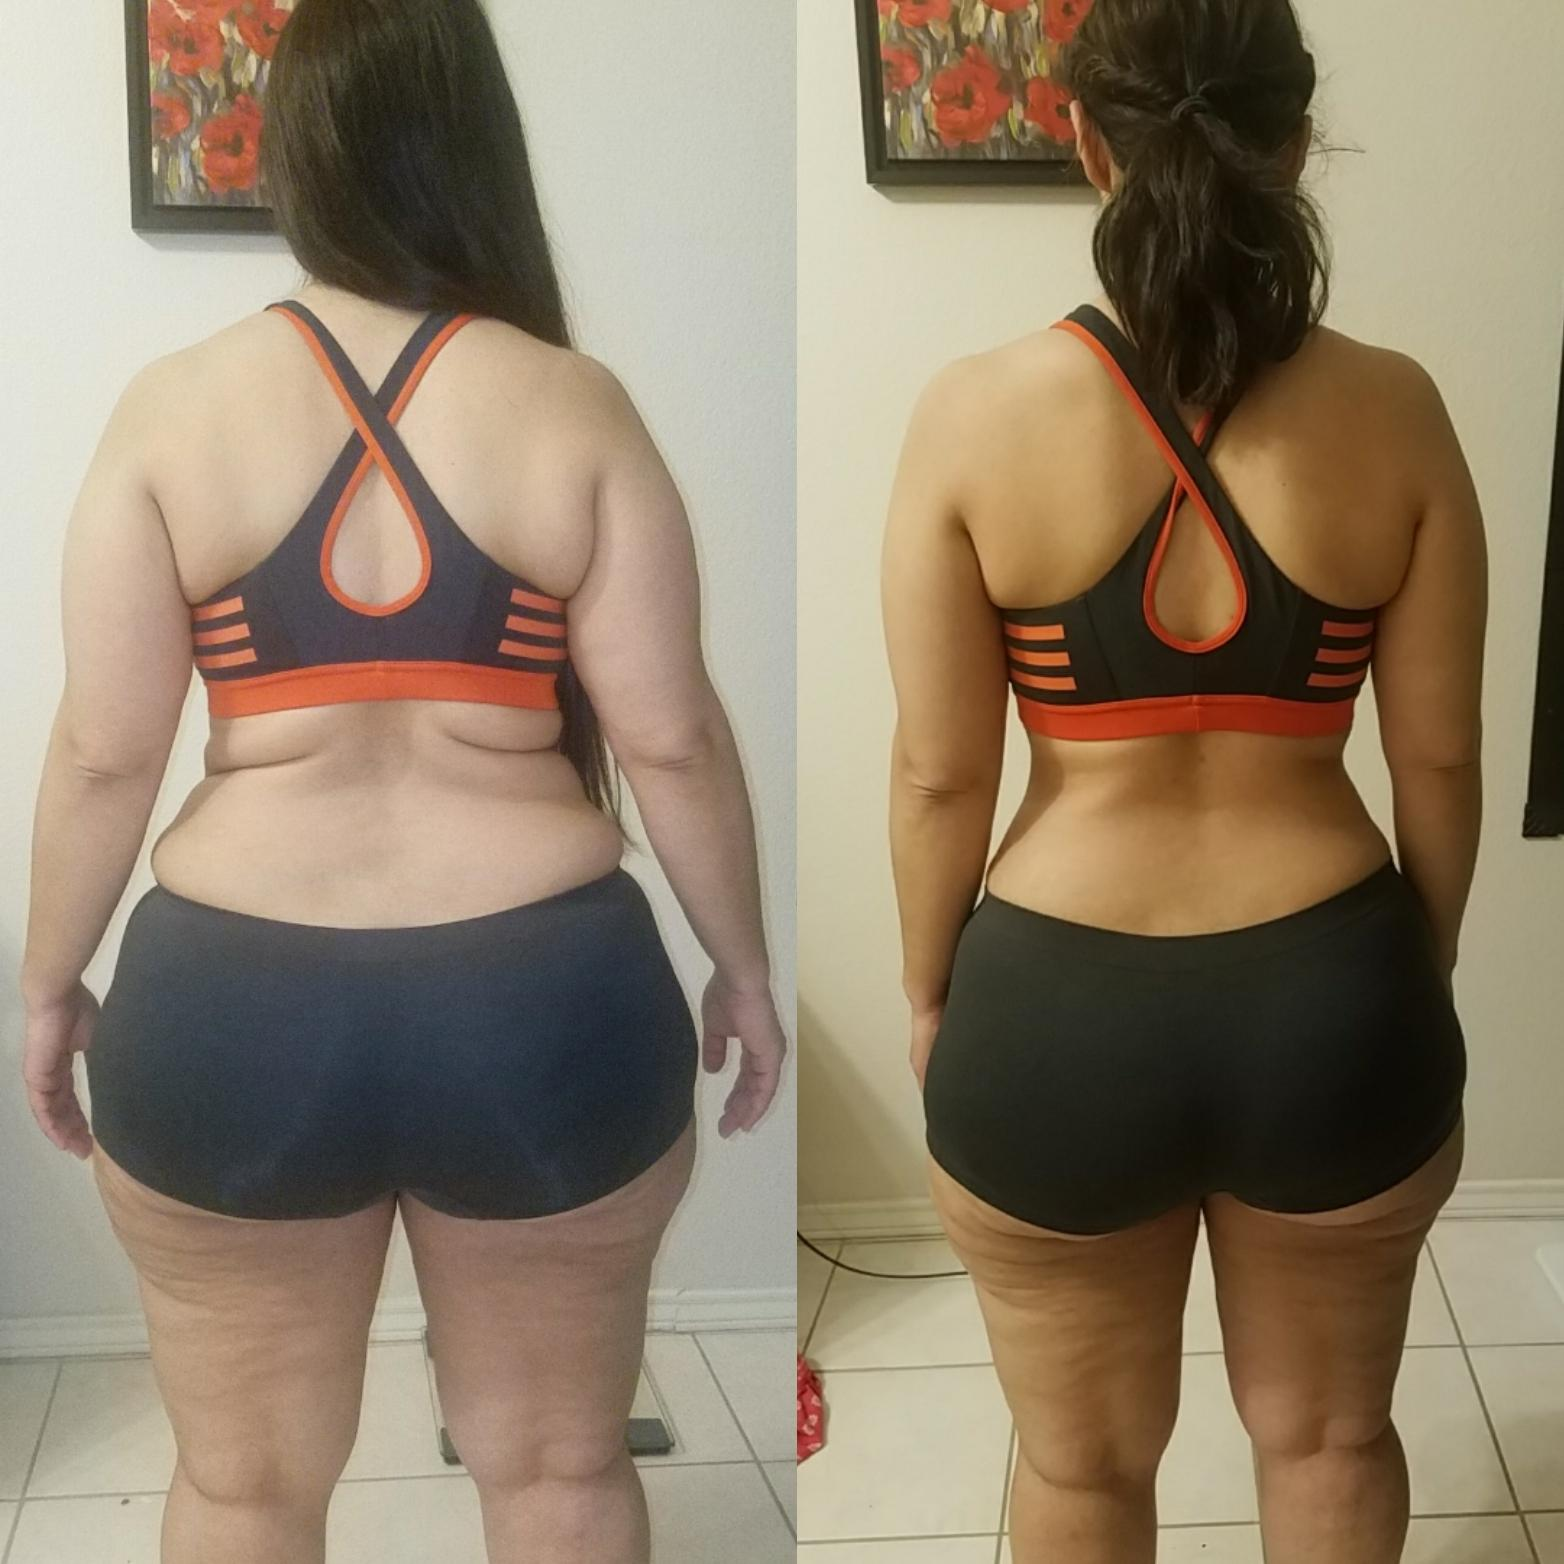 5 foot 1 Female 30 lbs Weight Loss Before and After 180 lbs to 150 lbs